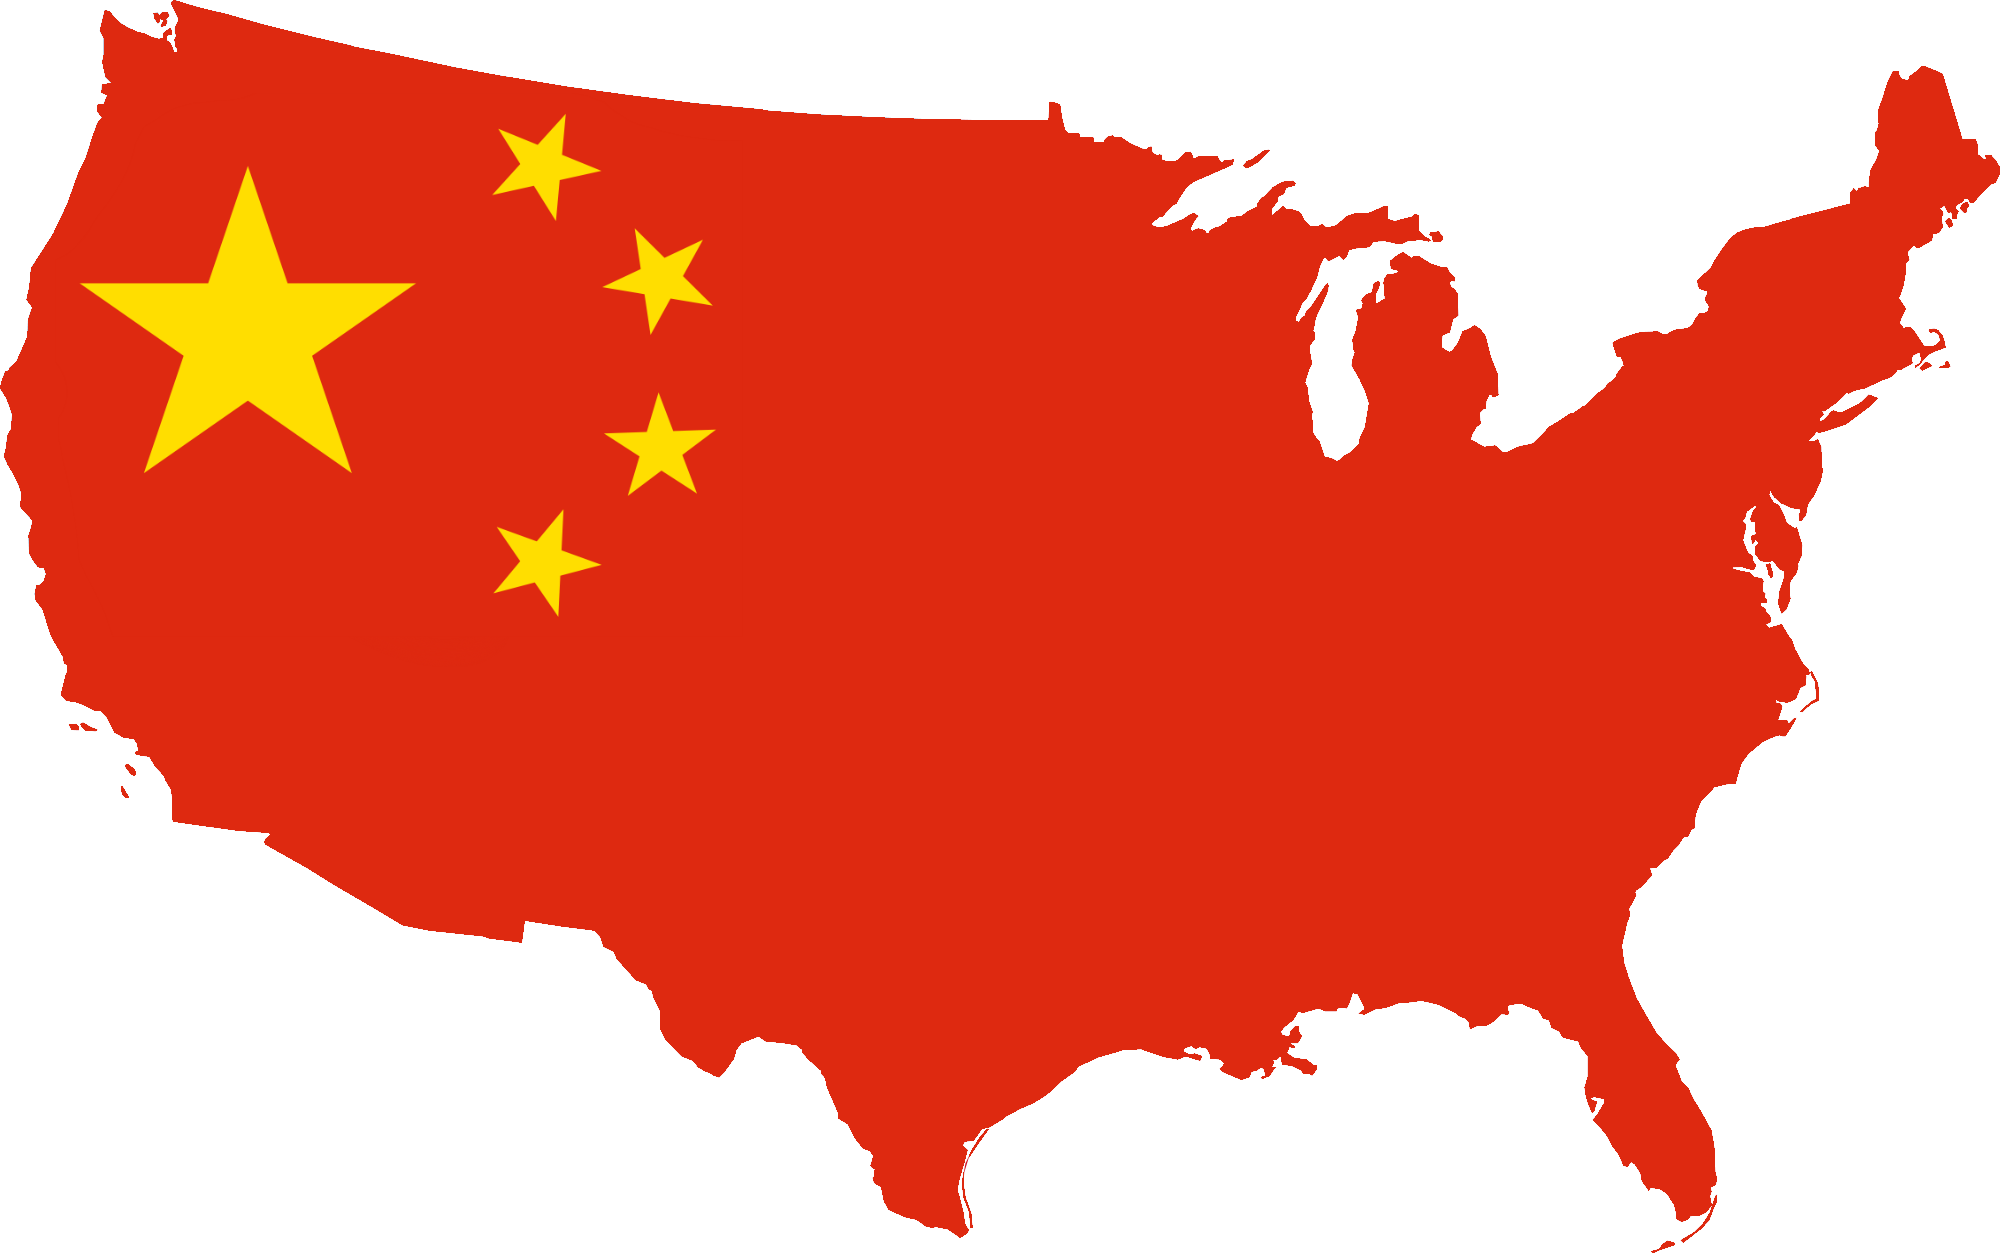 FileFlag Map Of USA Chinapng Wikimedia Commons - Us china map